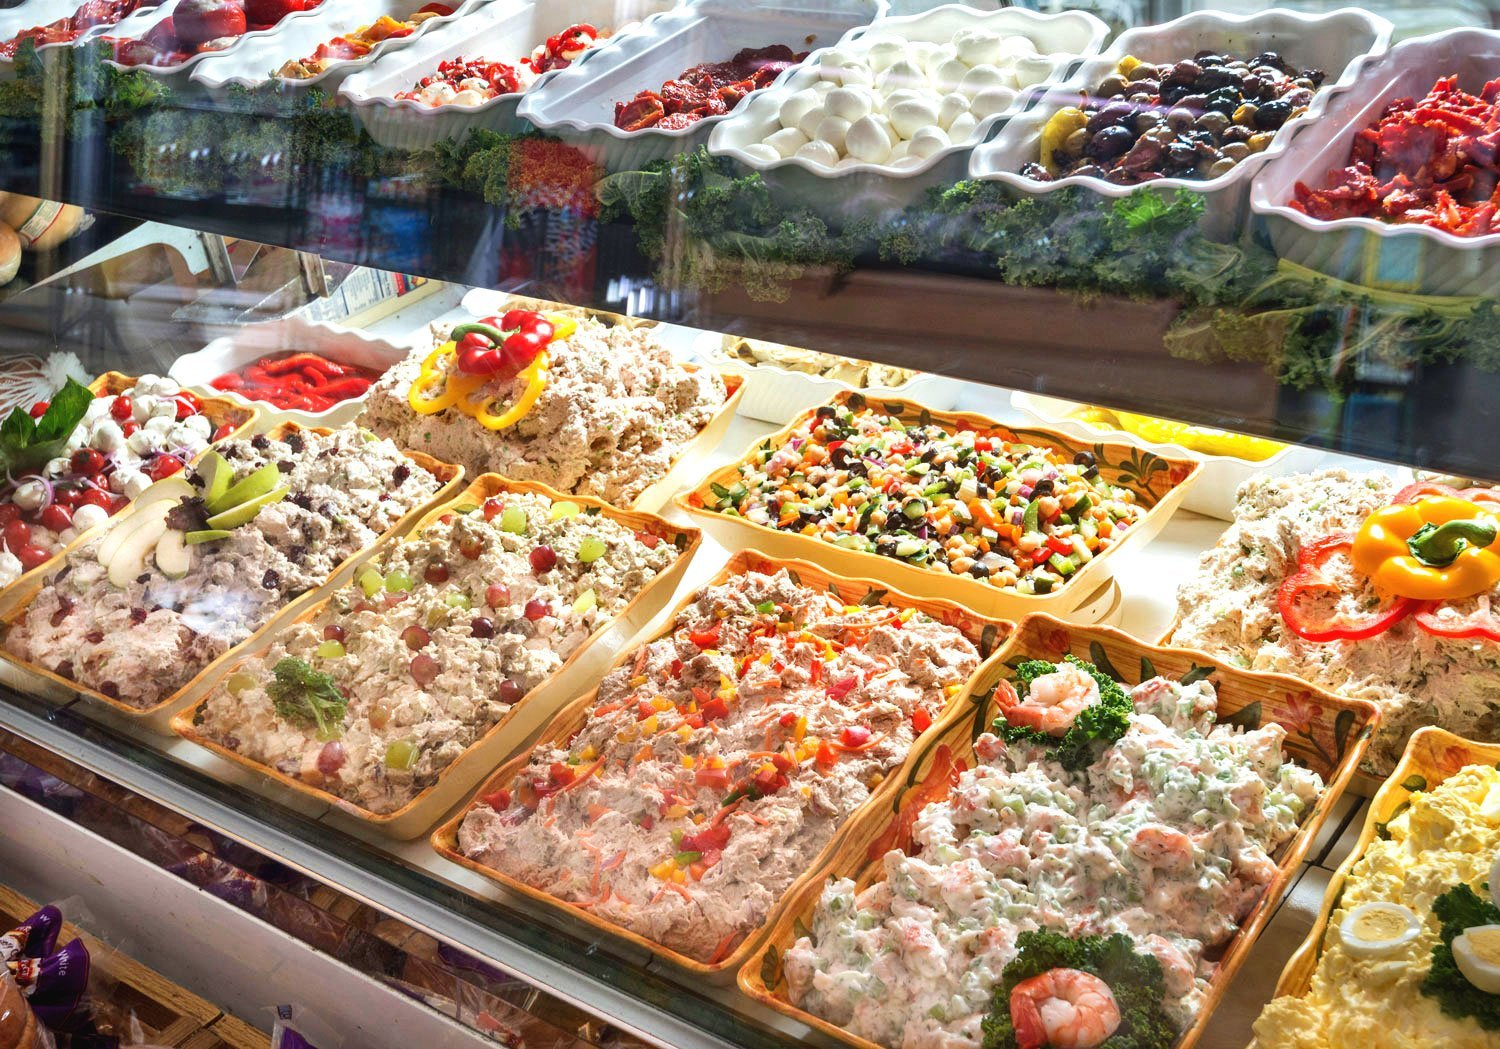 Deli Cold Salads